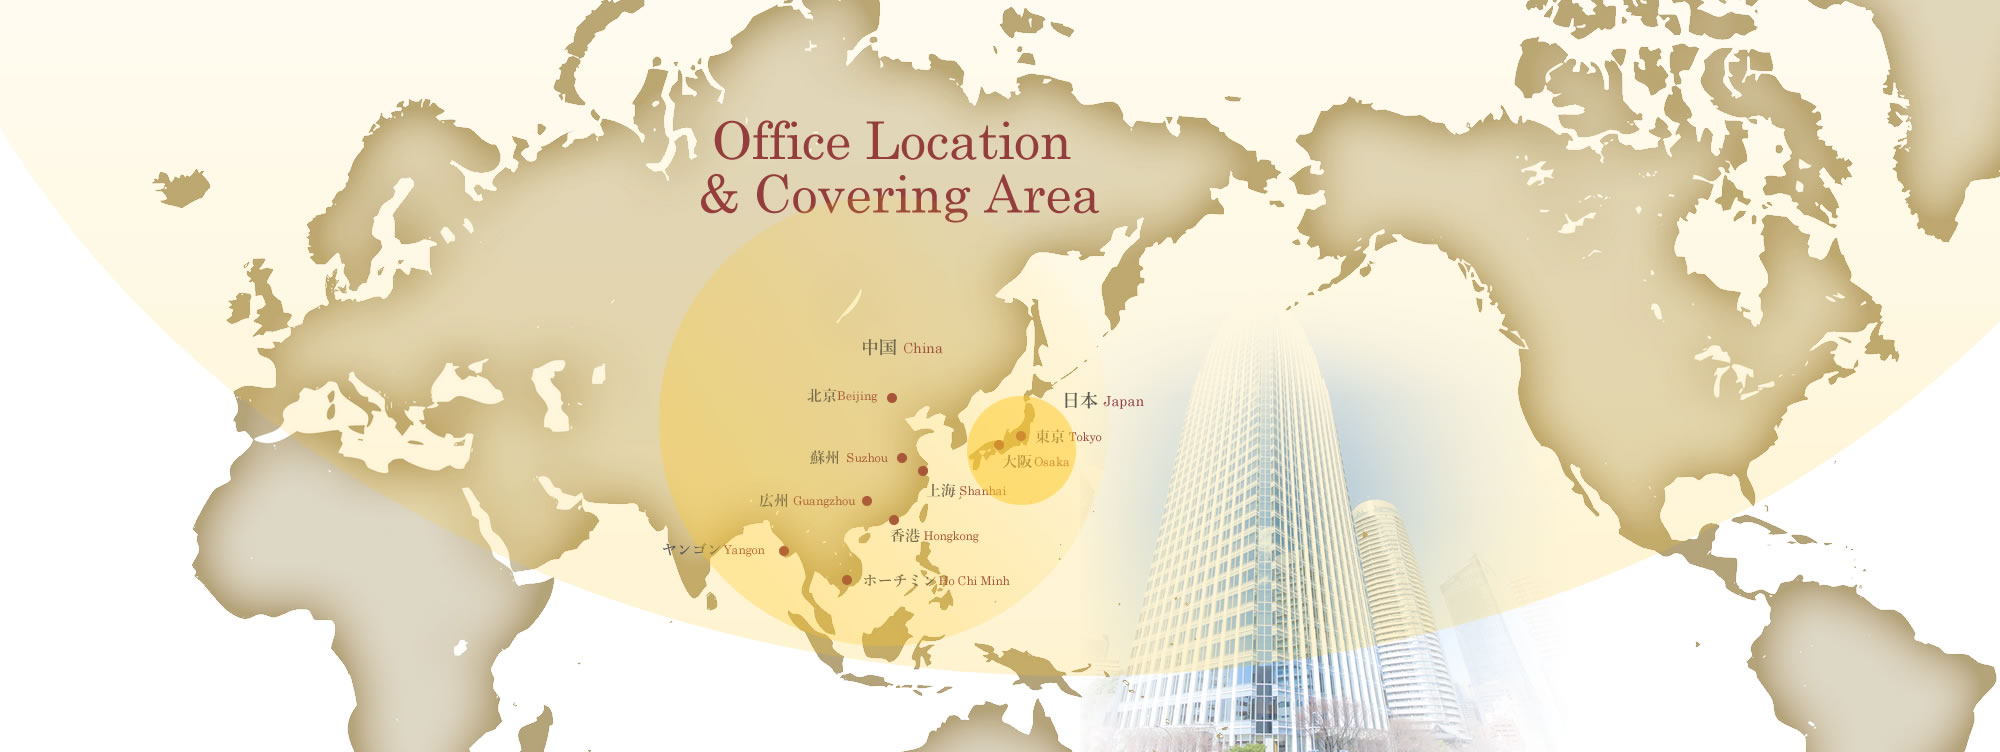 Office Location & Covering Area